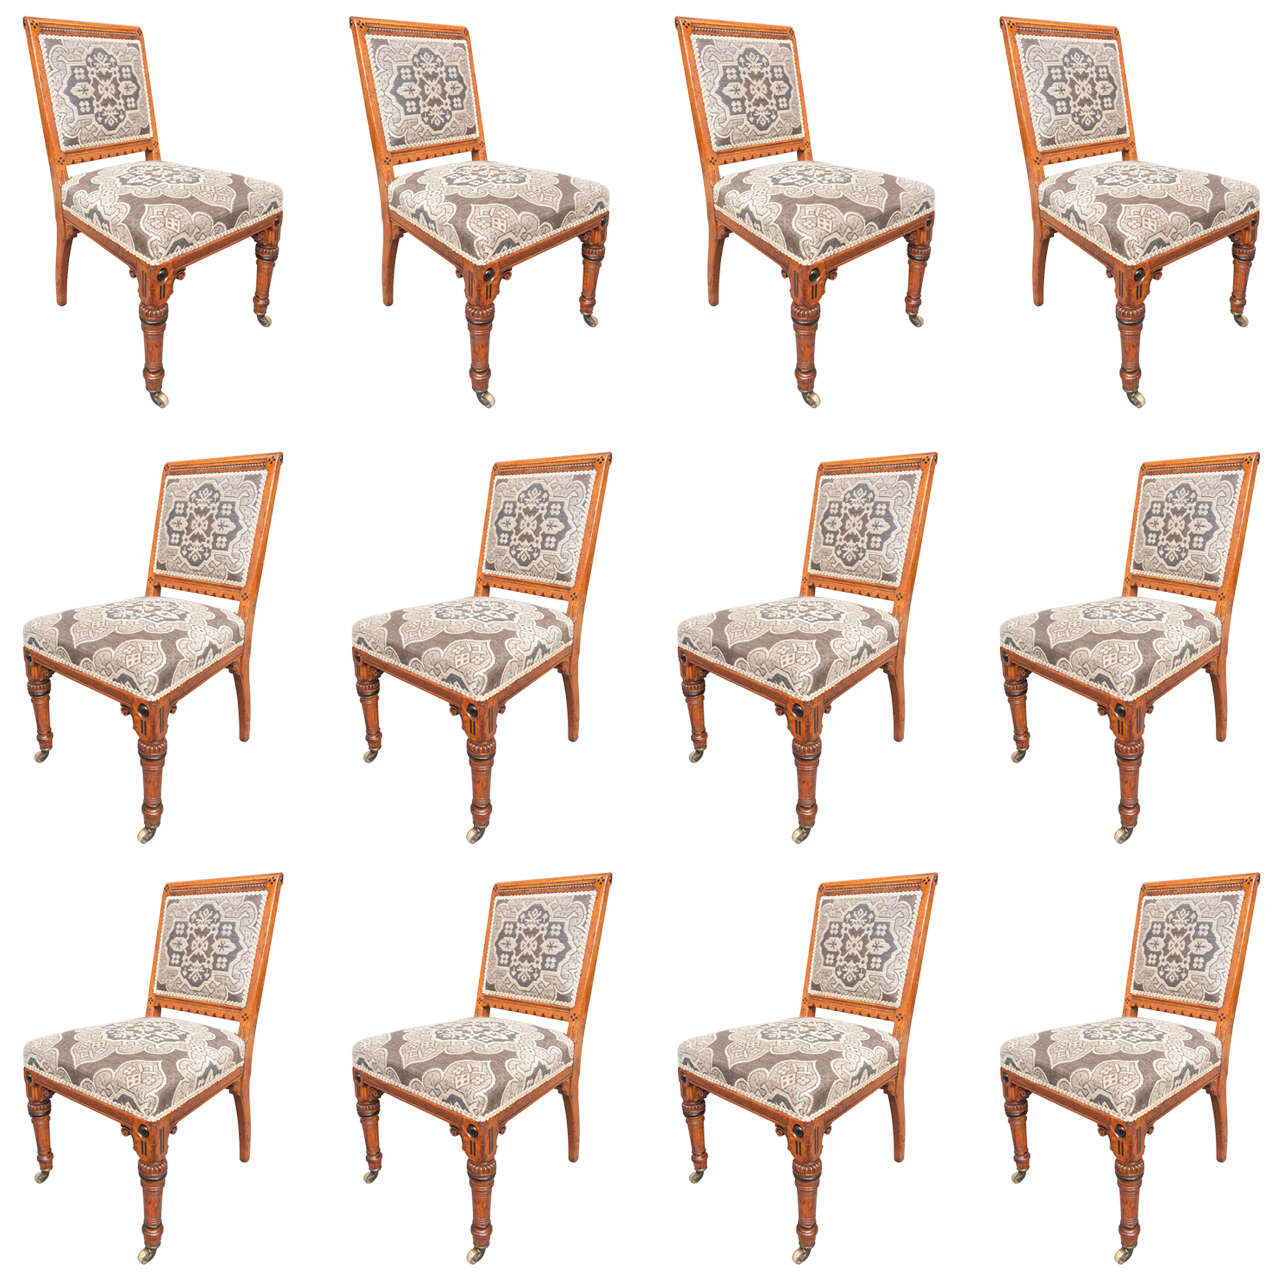 James Lamb set of twelve Arts and Crafts dining chairs, England circa 1890